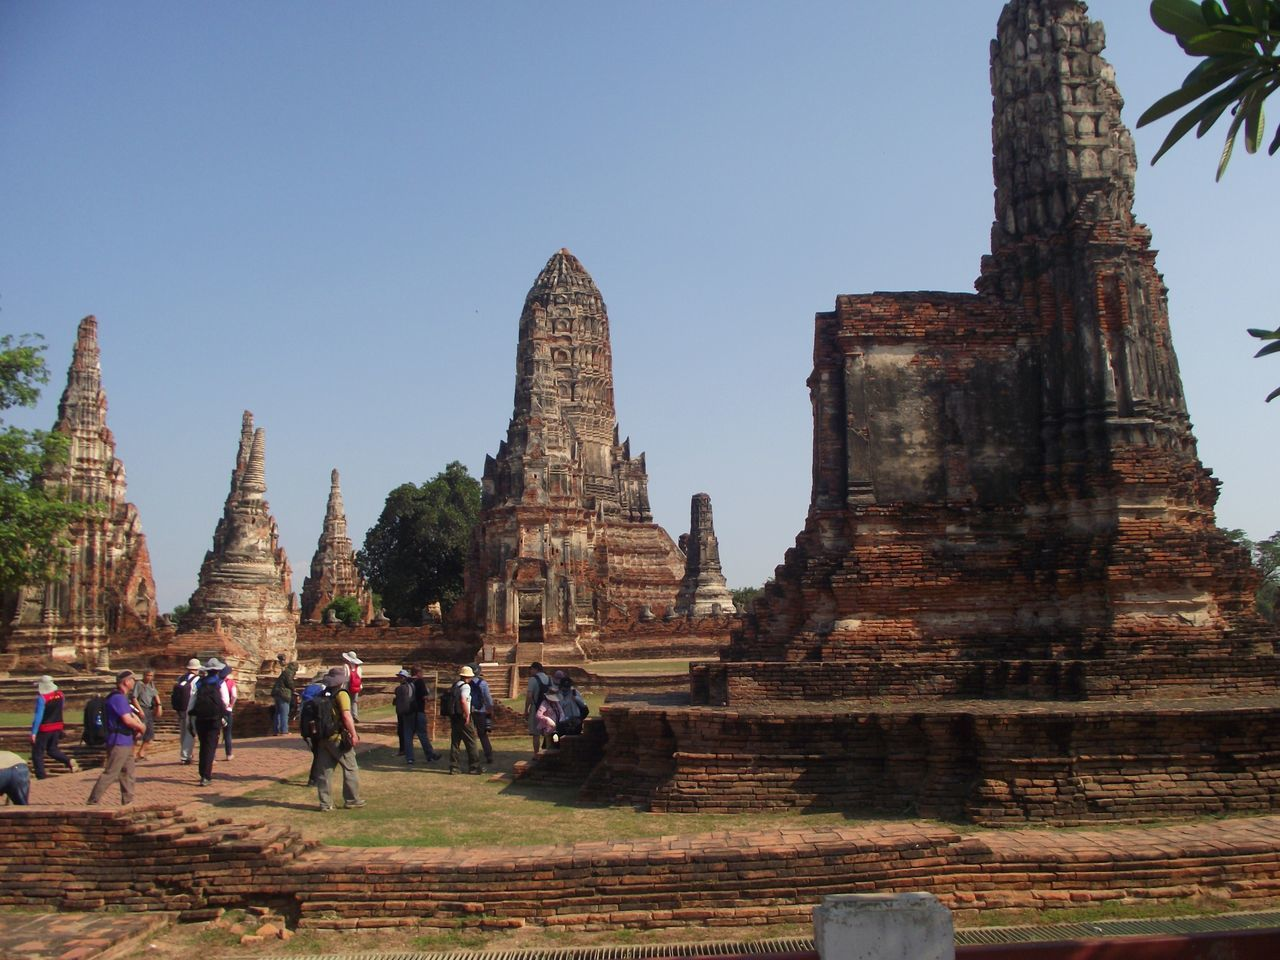 TOURISTS IN FRONT OF TEMPLEs AGAINST CLEAR SKY